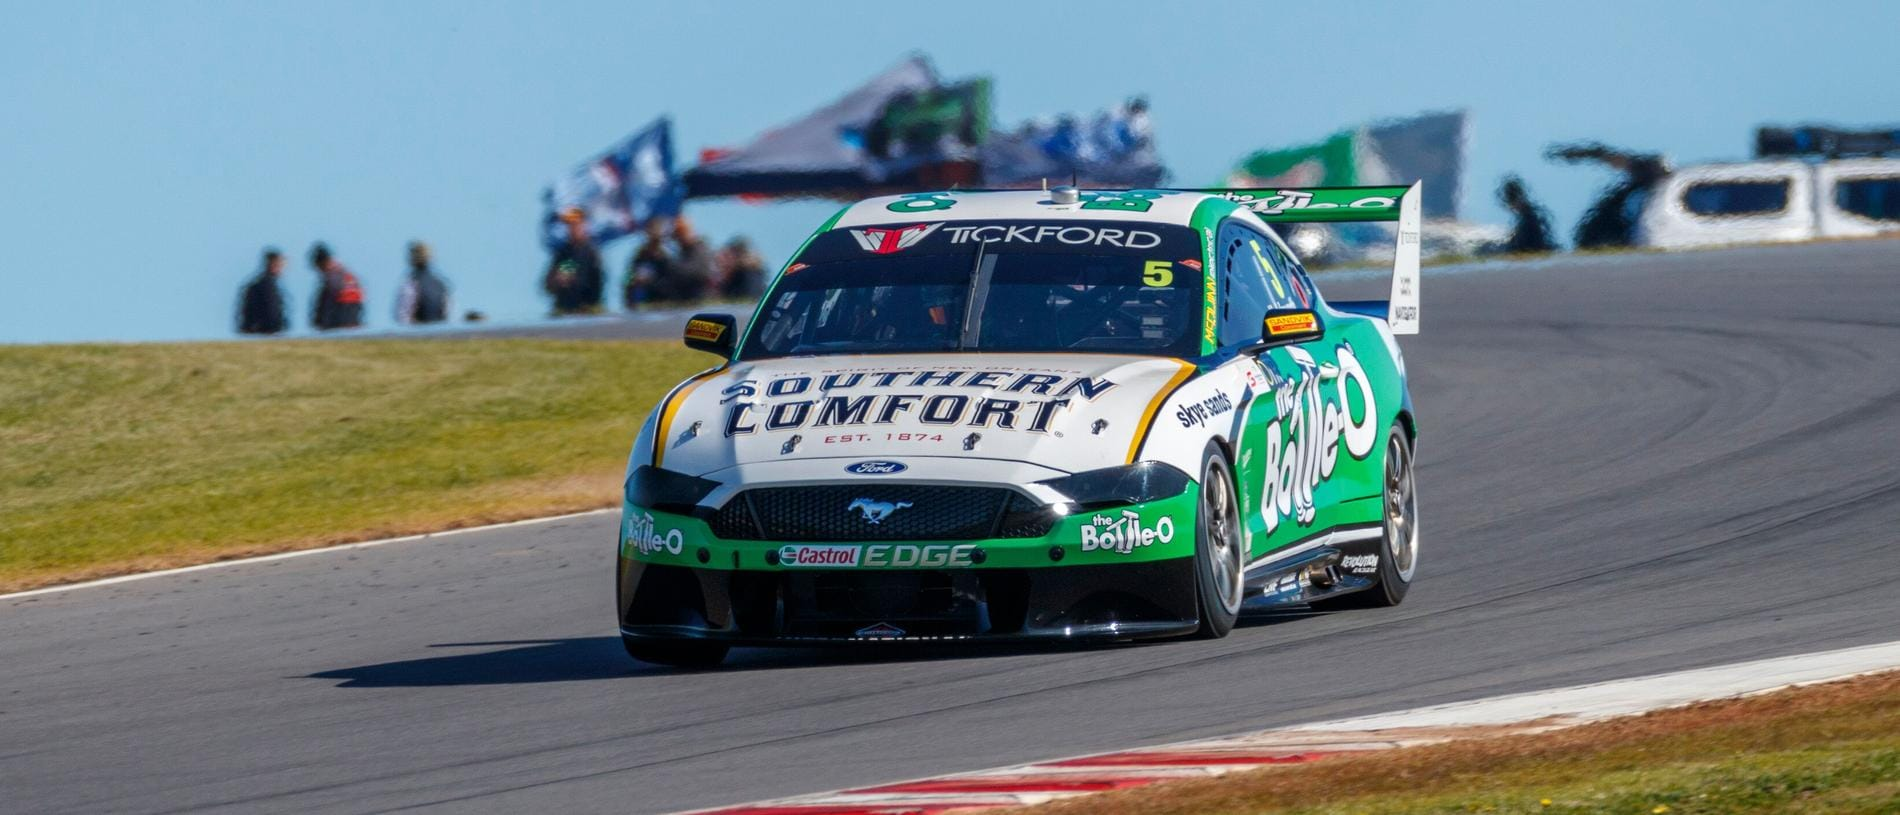 Lee Holdsworth will steer the No.5 in 2020 - but with a new sponsor.